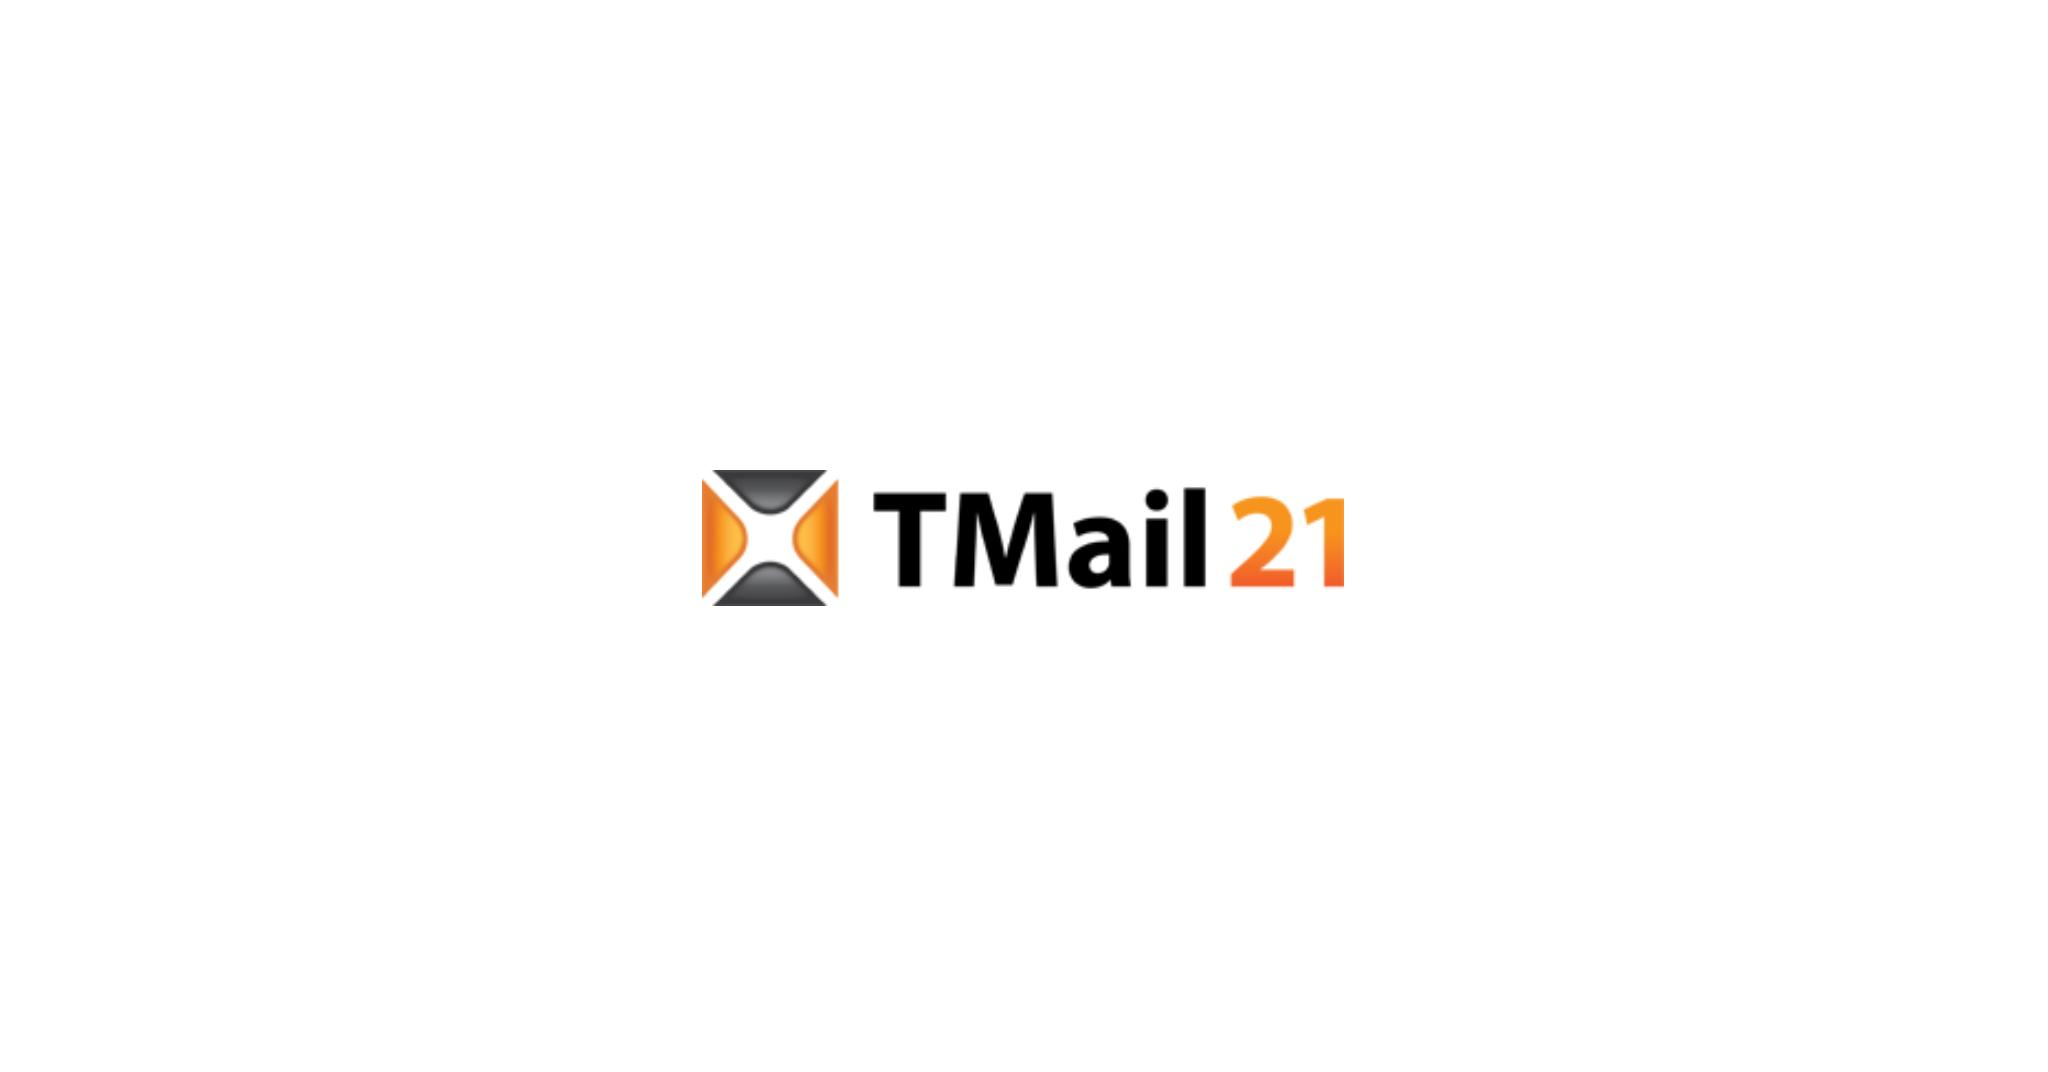 TMail21